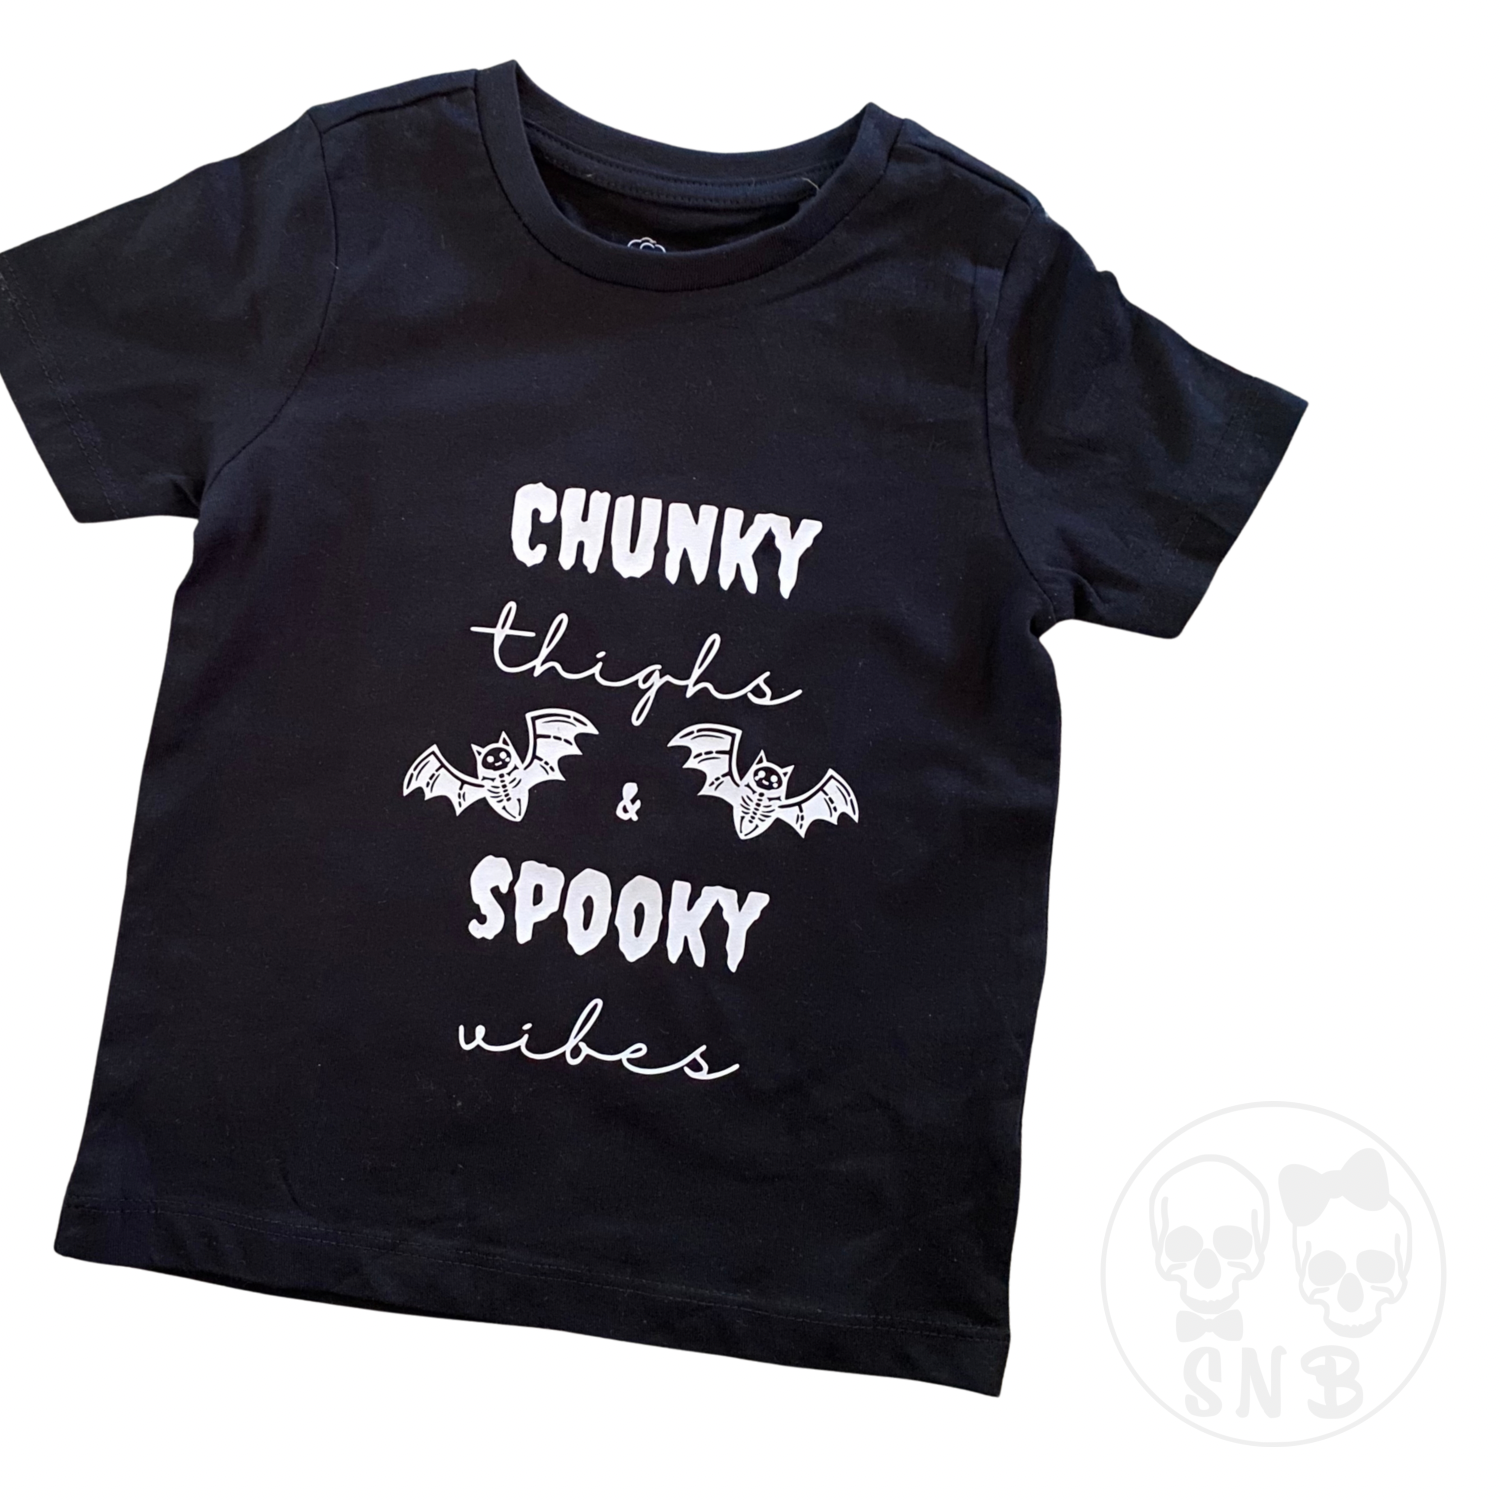 Chunky thighs & spooky vibes. where are all our thick thighed girls with a love for all things spooky hiding? this t-shirt is perfect for any spooky babe from babies - adults. The design is printed on a premium quality, crew neck t-shirt or onesie of choice made using 100% ethically sourced Australian cotton. Black shirt printed with White designs, All other shirts are printed with black designs. Our Colour options are endless. Please use the 'contact us' page to discuss your custom t-shirt